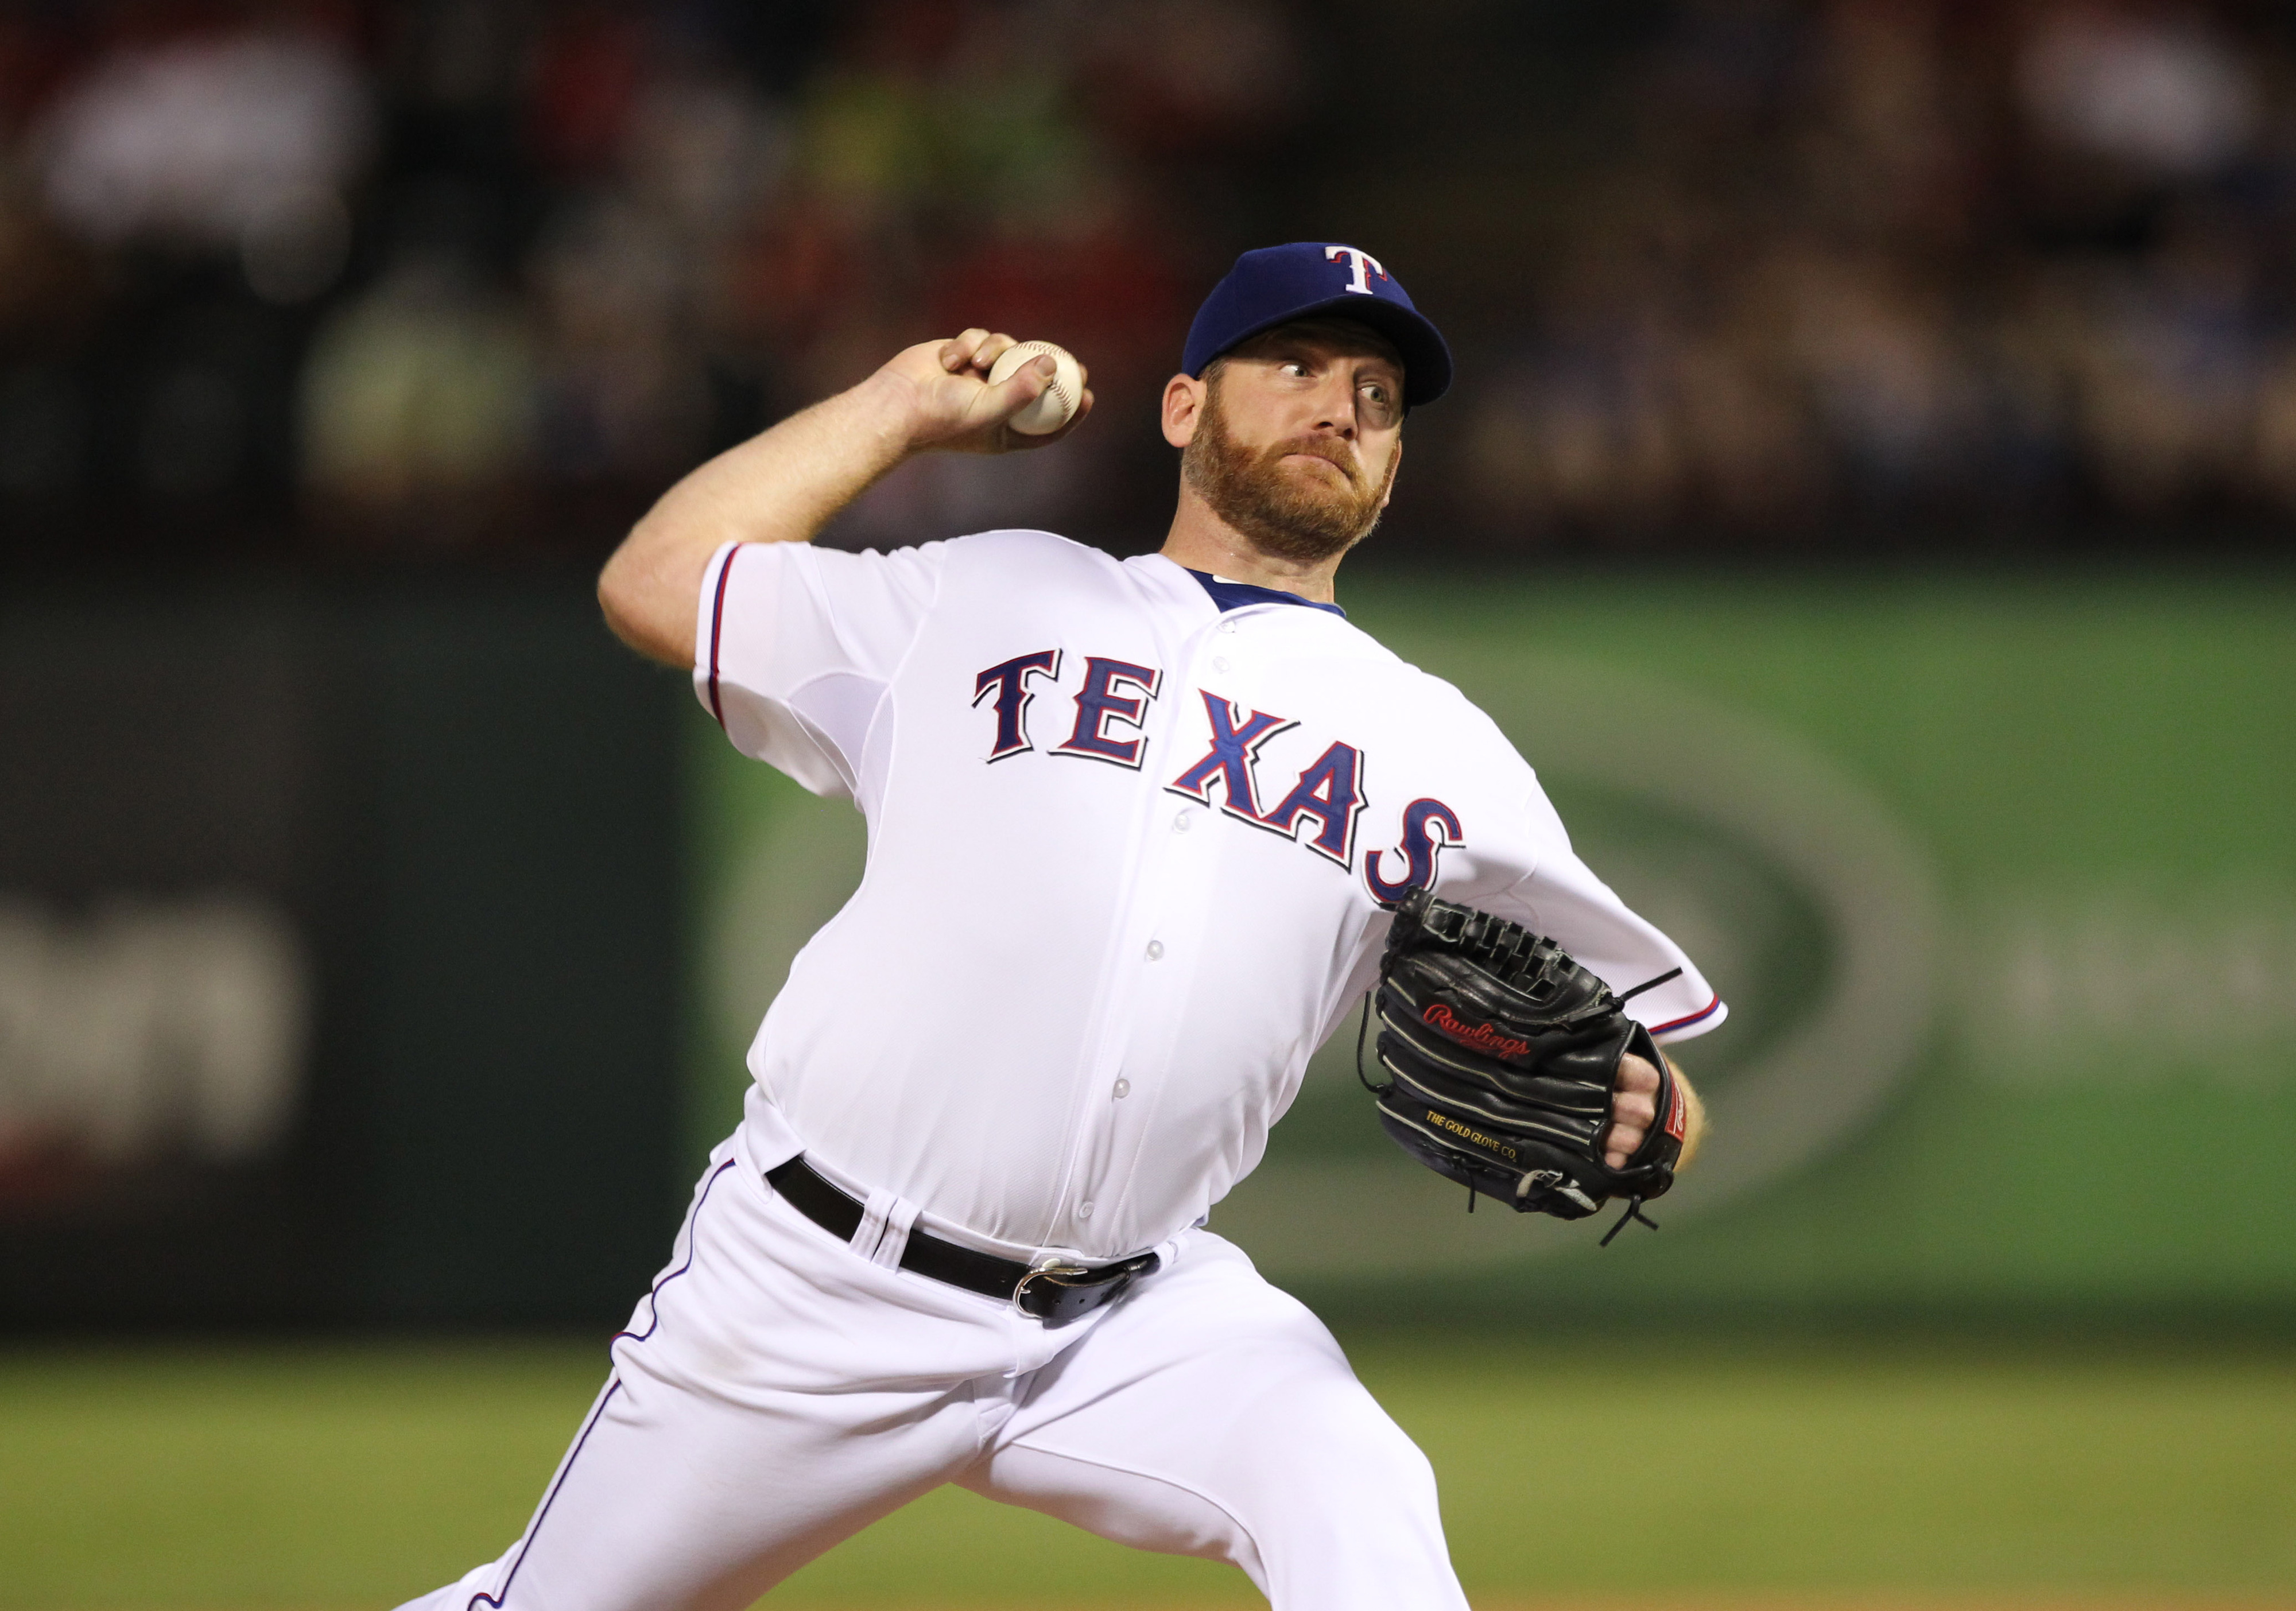 Aug 20, 2012; Arlington, TX, USA; Texas Rangers starting pitcher Ryan Dempster (46) pitches in the eighth inning against the Baltimore Orioles at Rangers Ballpark. The Rangers beat the Orioles 5-1. Mandatory Credit: Matthew Emmons-US PRESSWIRE